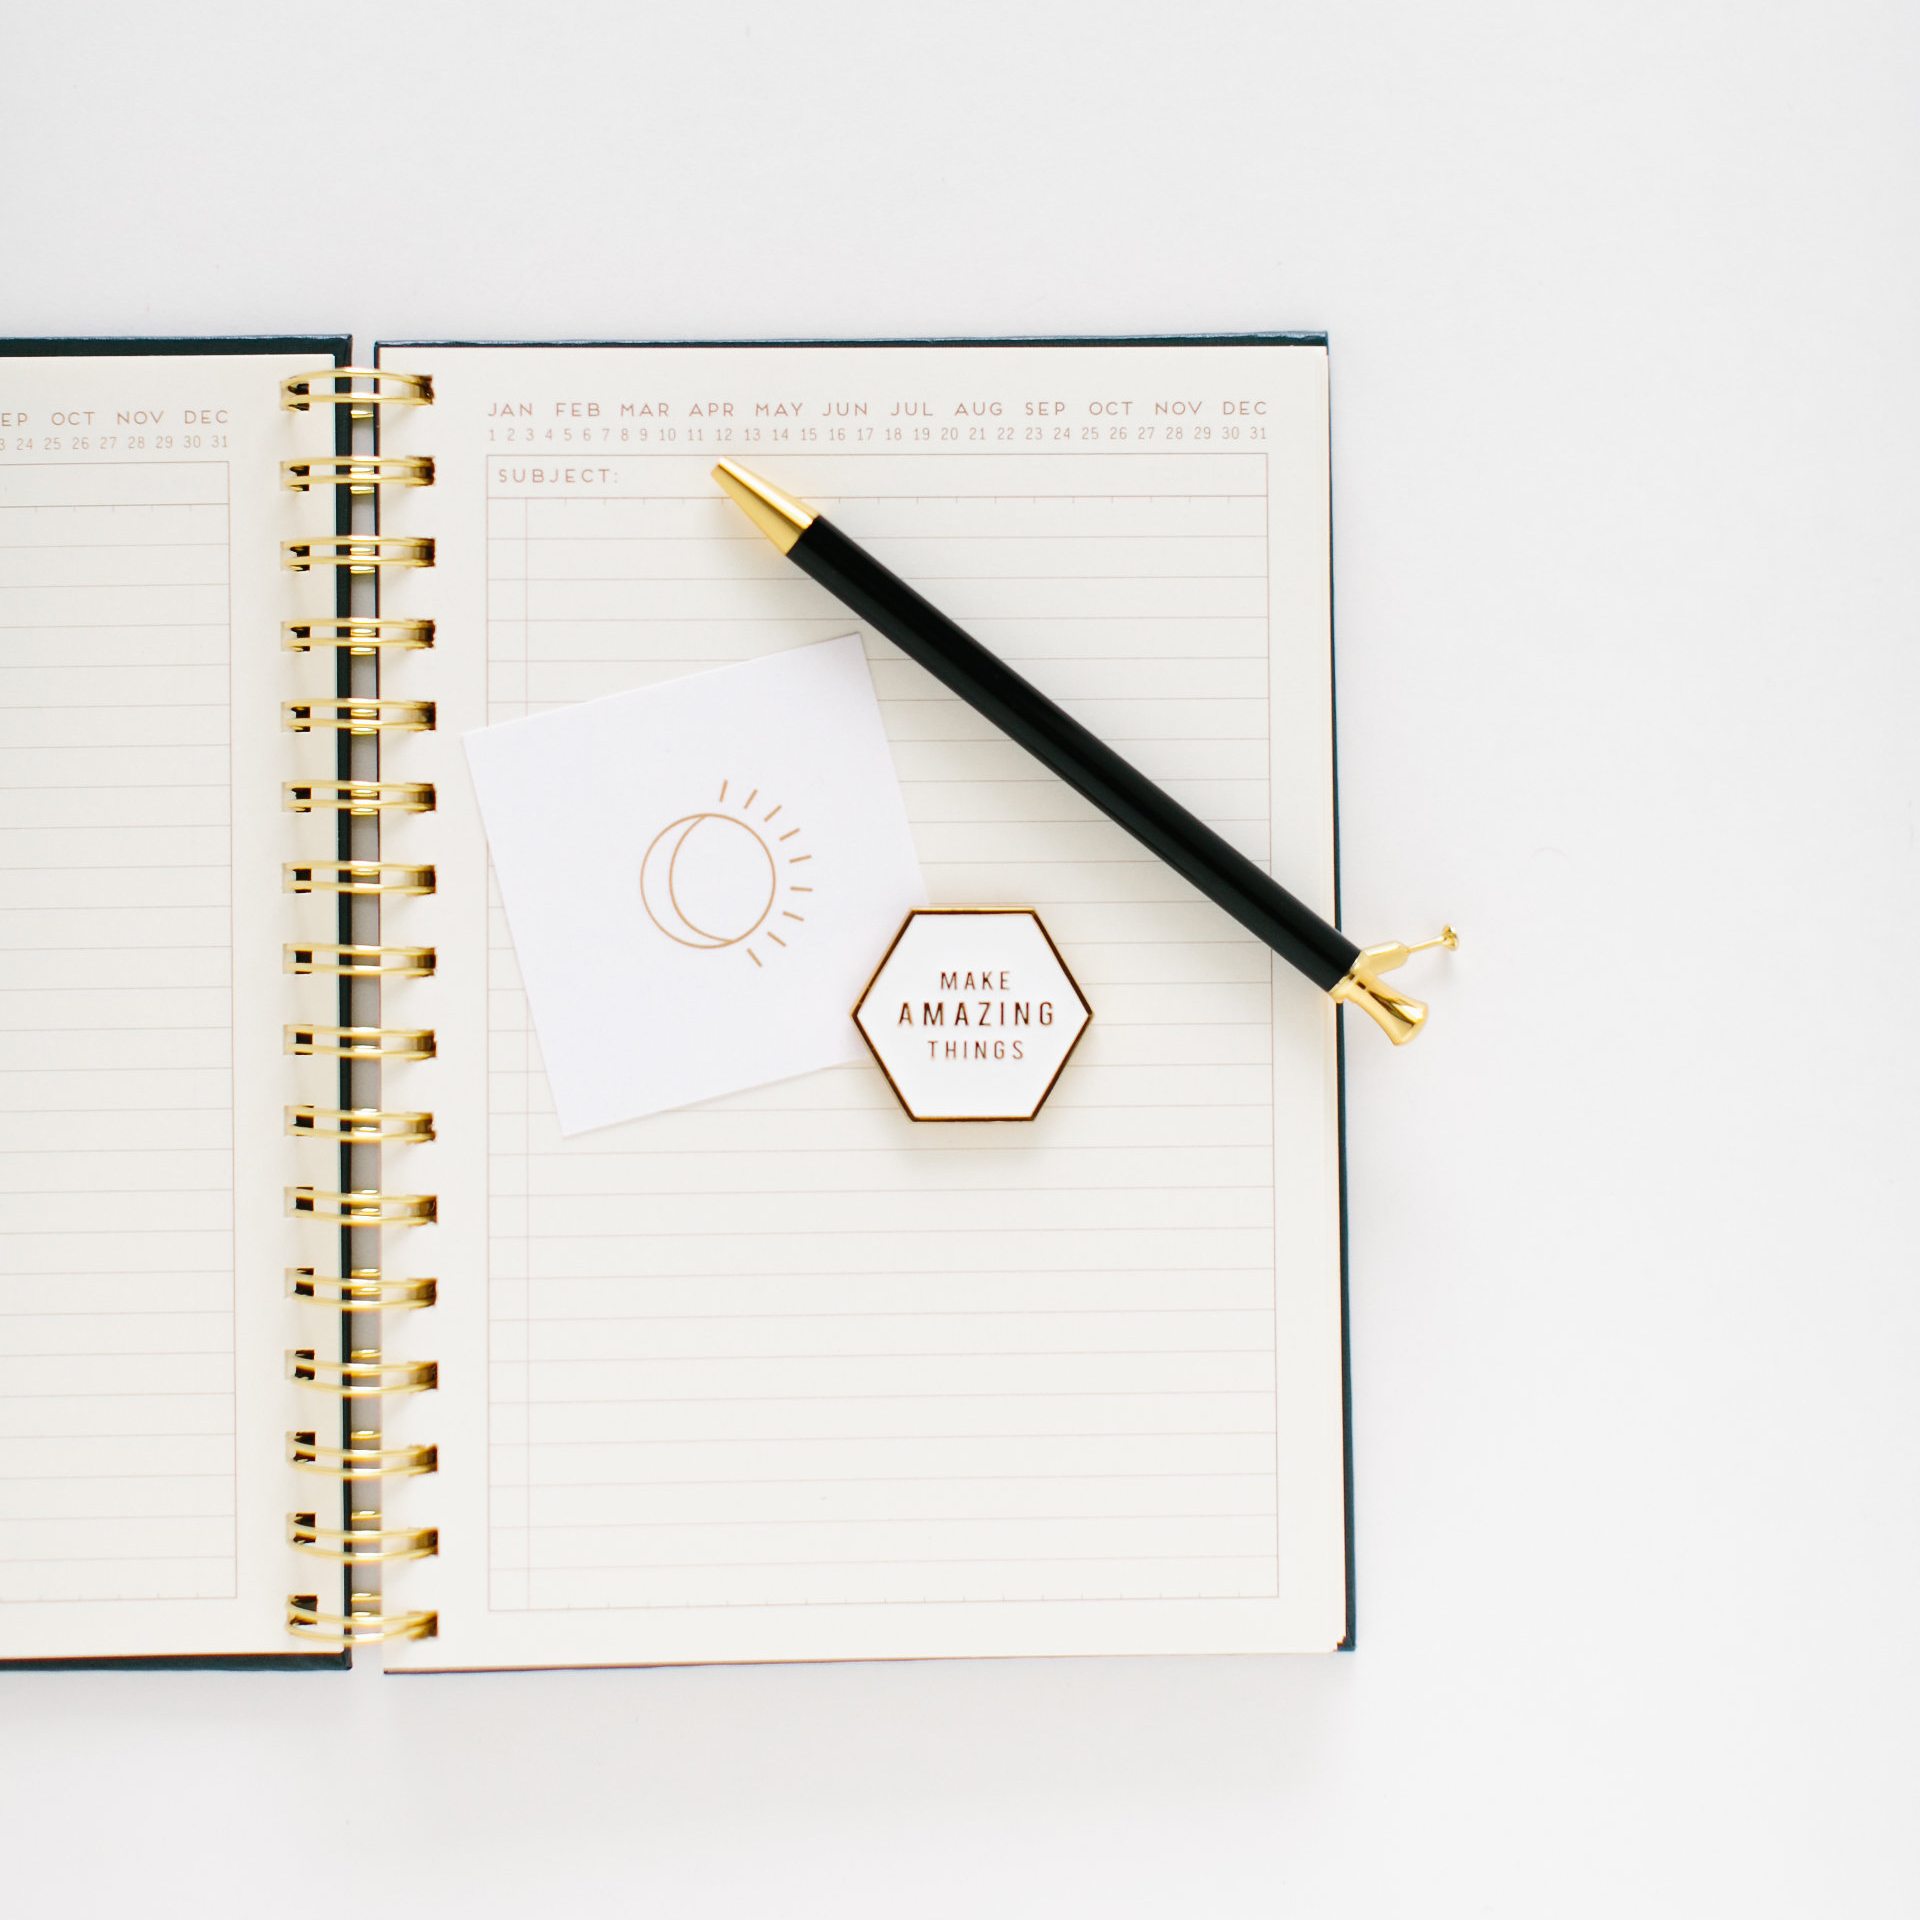 Open journal with pen and badge saying Make Amazing Things